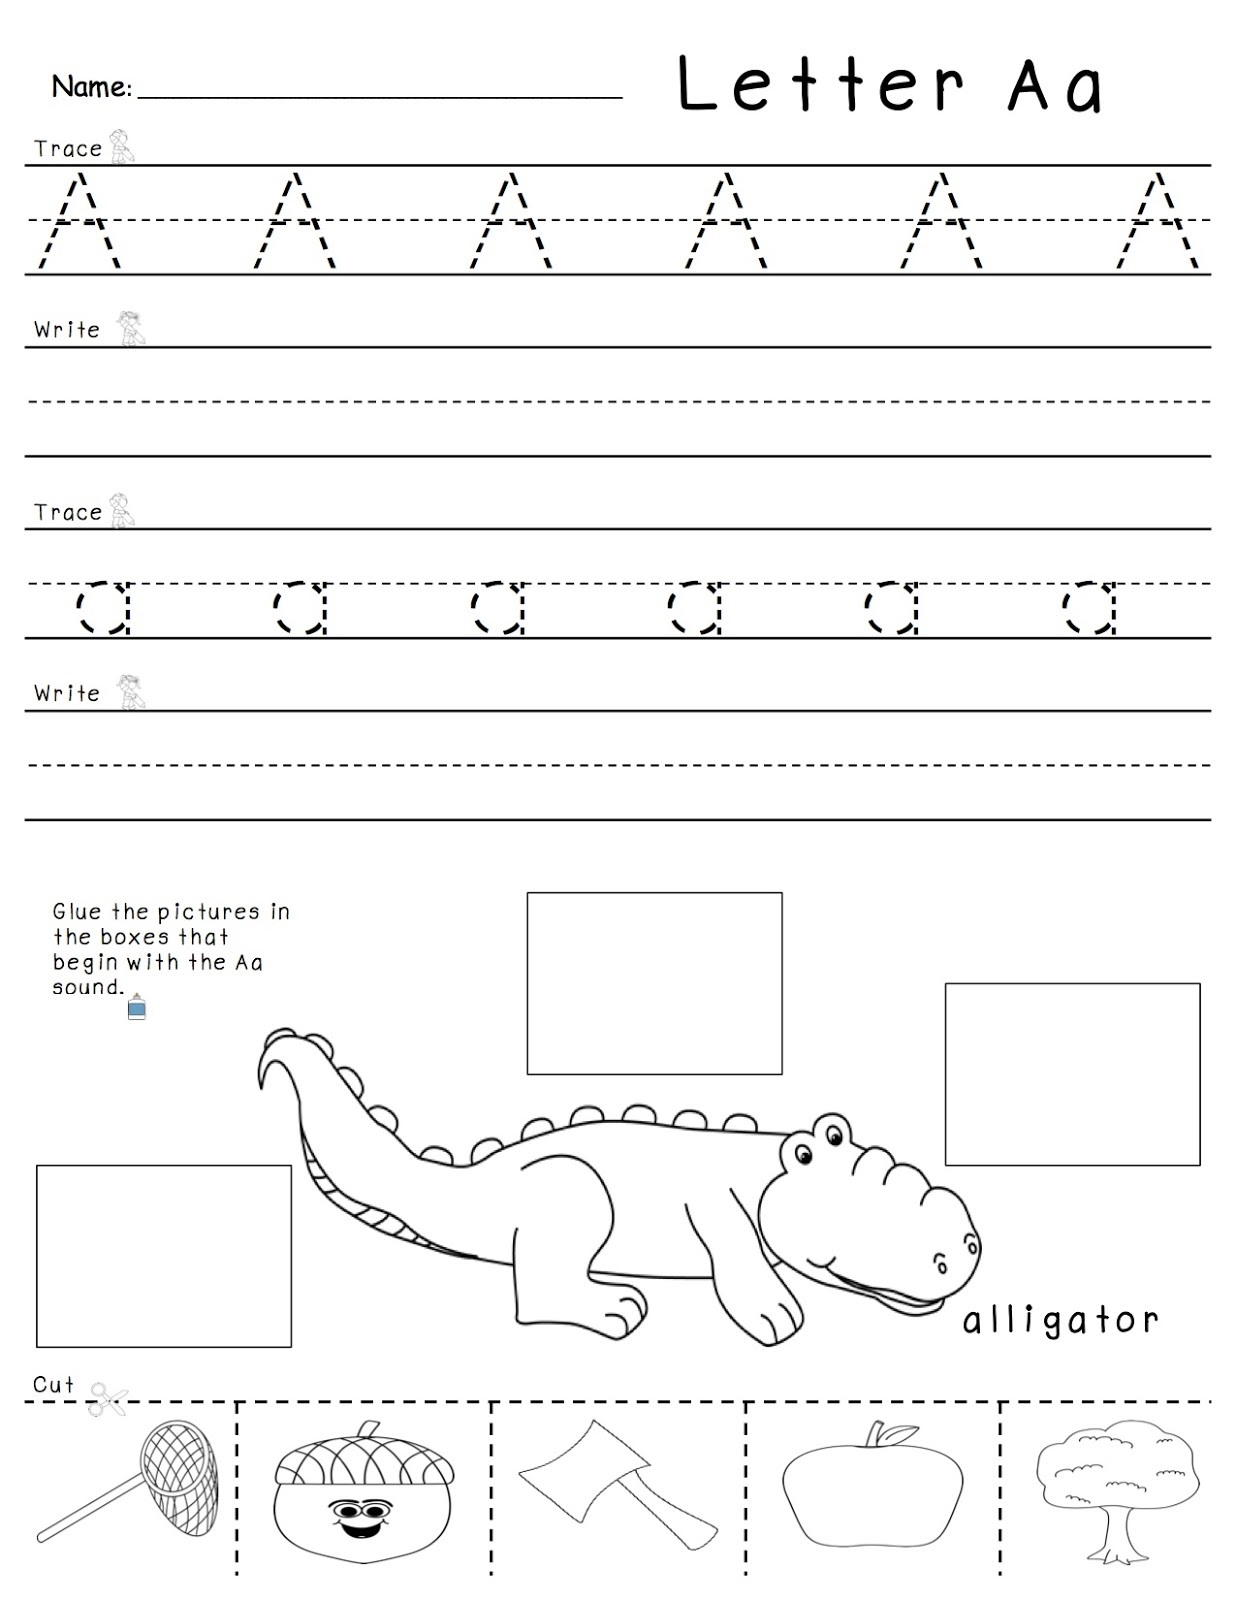 Printables Letter A Worksheets trace the letter a worksheets activity shelter alligator